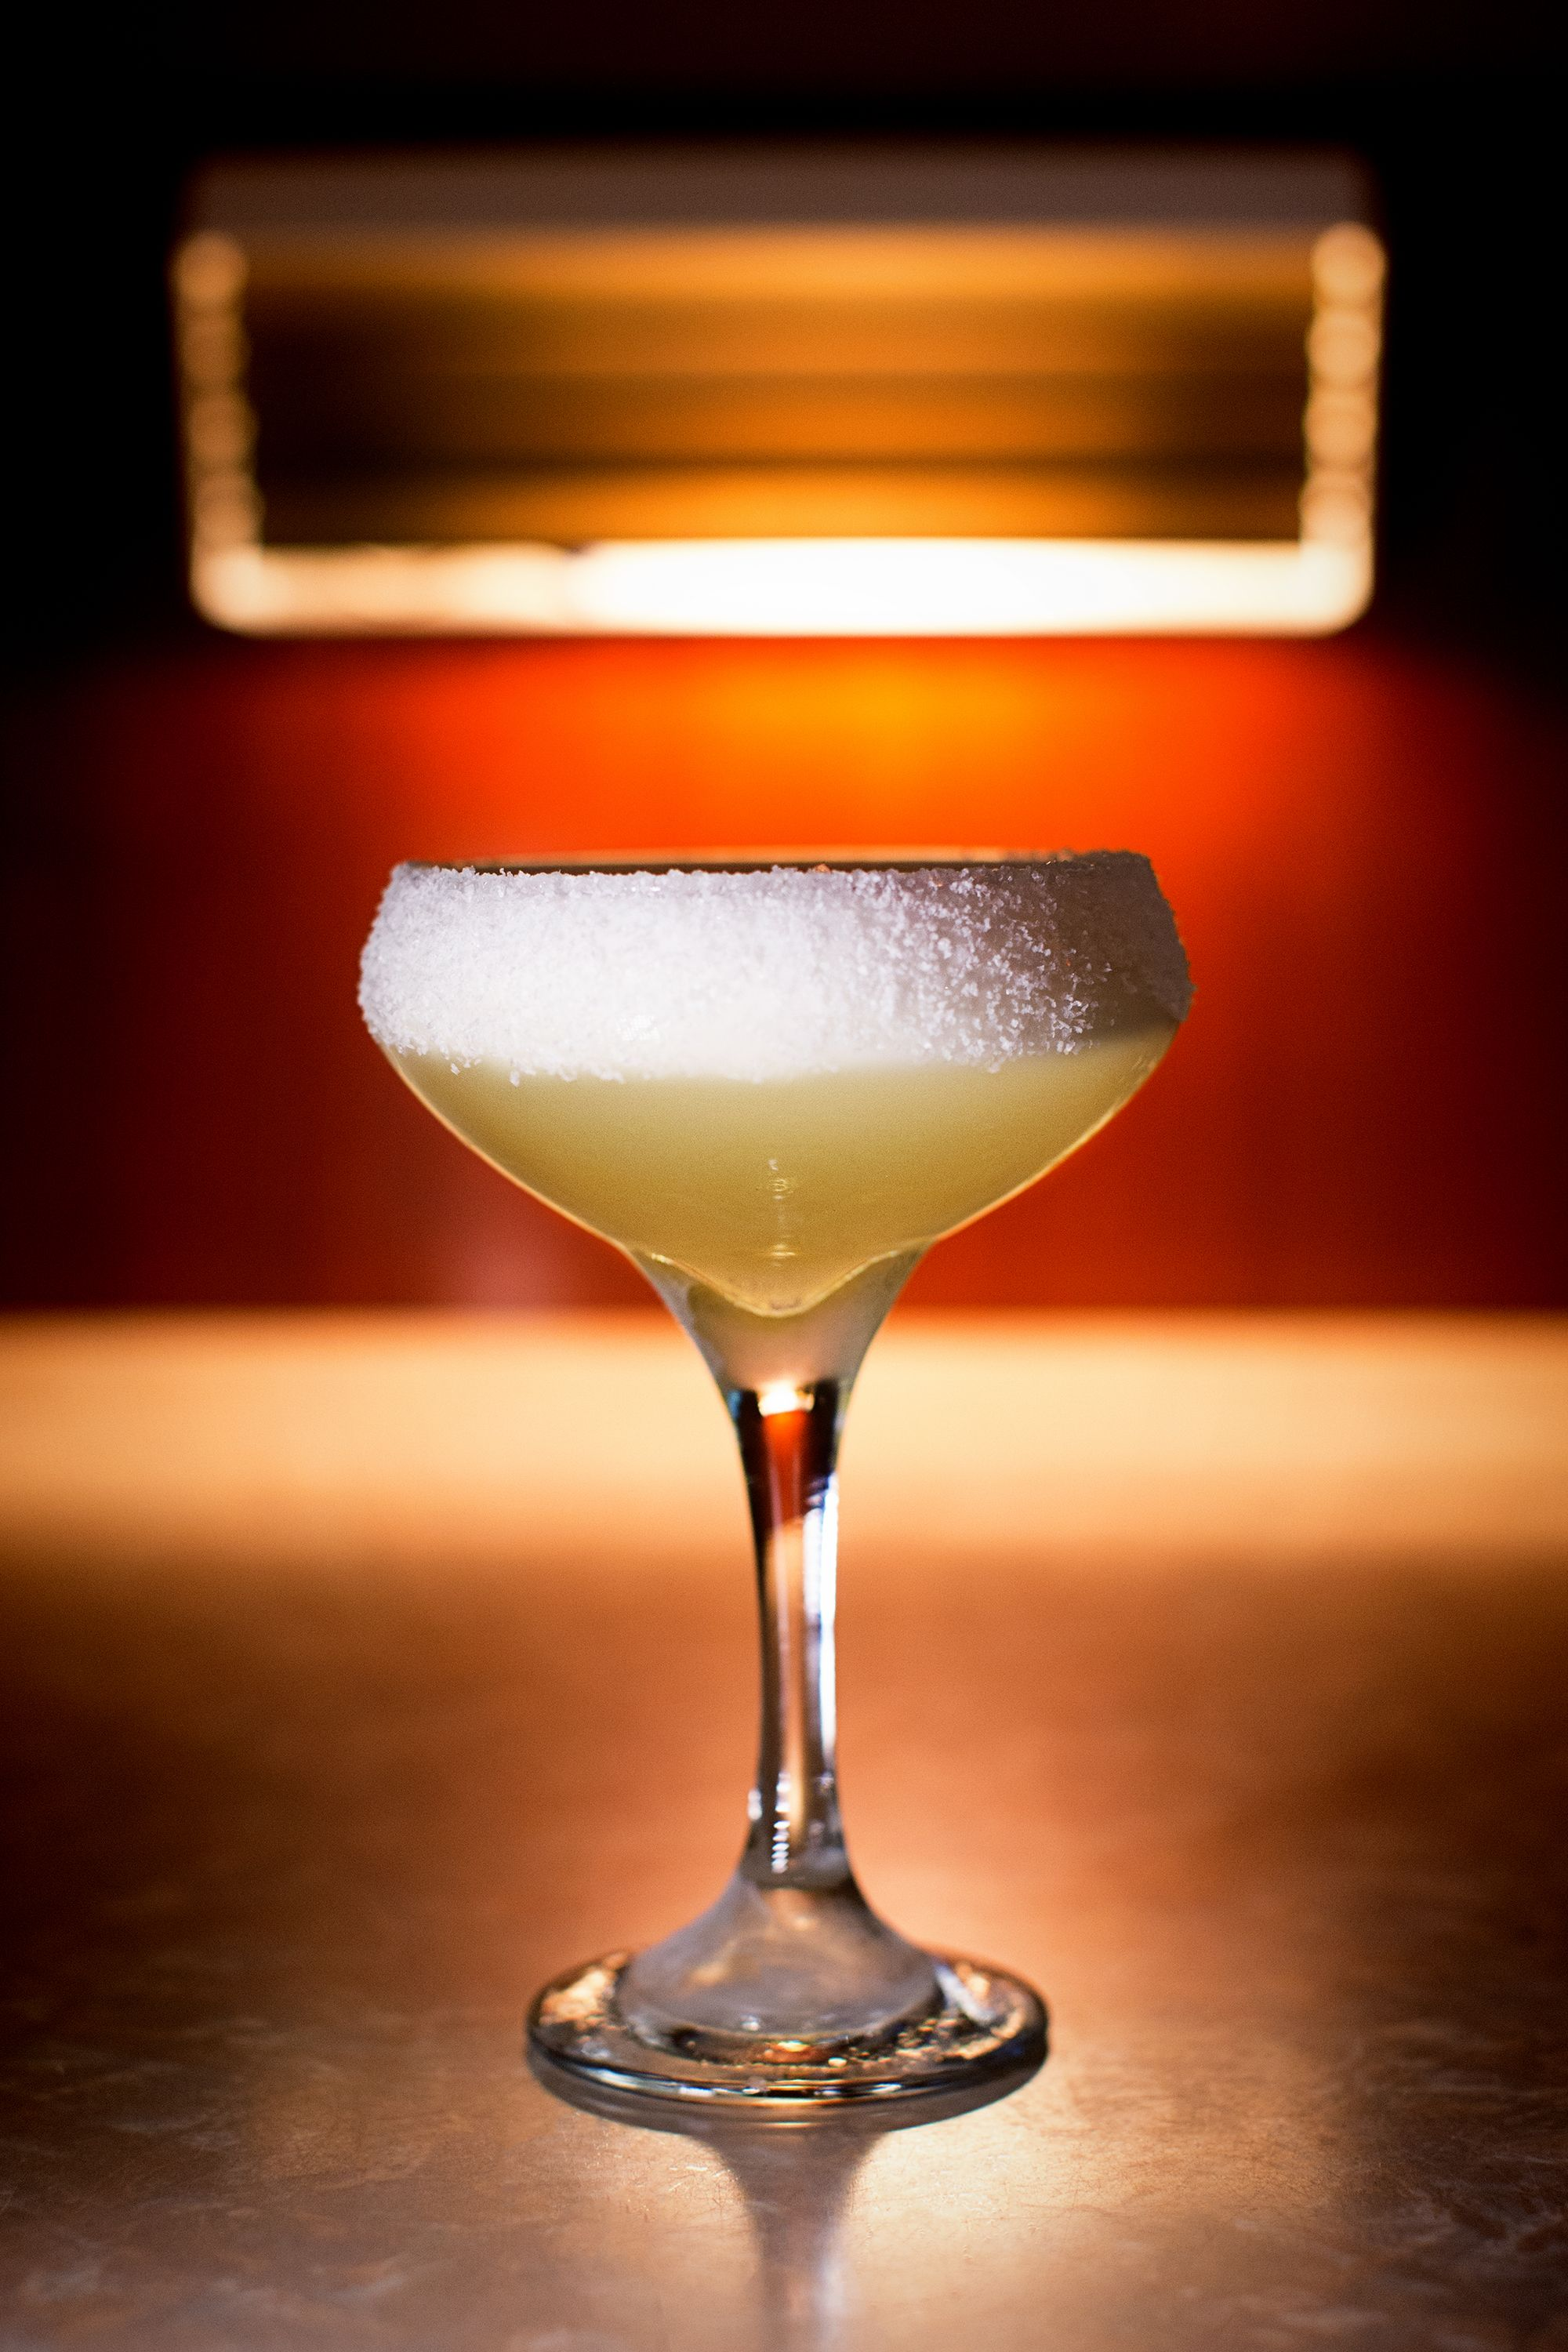 "<p>""It's just like a traditional margarita, but with an egg white. And we split the base between reposado tequila and mezcal. It gives you those summer flavors, but with the thickness of the body and the smoke of the mezcal.""</p><p><strong>Ingredients:</strong></p><p>• 1 oz reposado (slightly aged) tequila</p><p>• 1 oz mezcal (like Del Maguey Vida)</p><p>• 1 oz lime juice</p><p>• .75 oz simple syrup</p><p>• 1 egg white</p><p><strong>Directions:</strong></p><p>Shake ingredients without ice, then shake again with ice. Strain into a coupe glass and serve up with a salted rim. </p>"